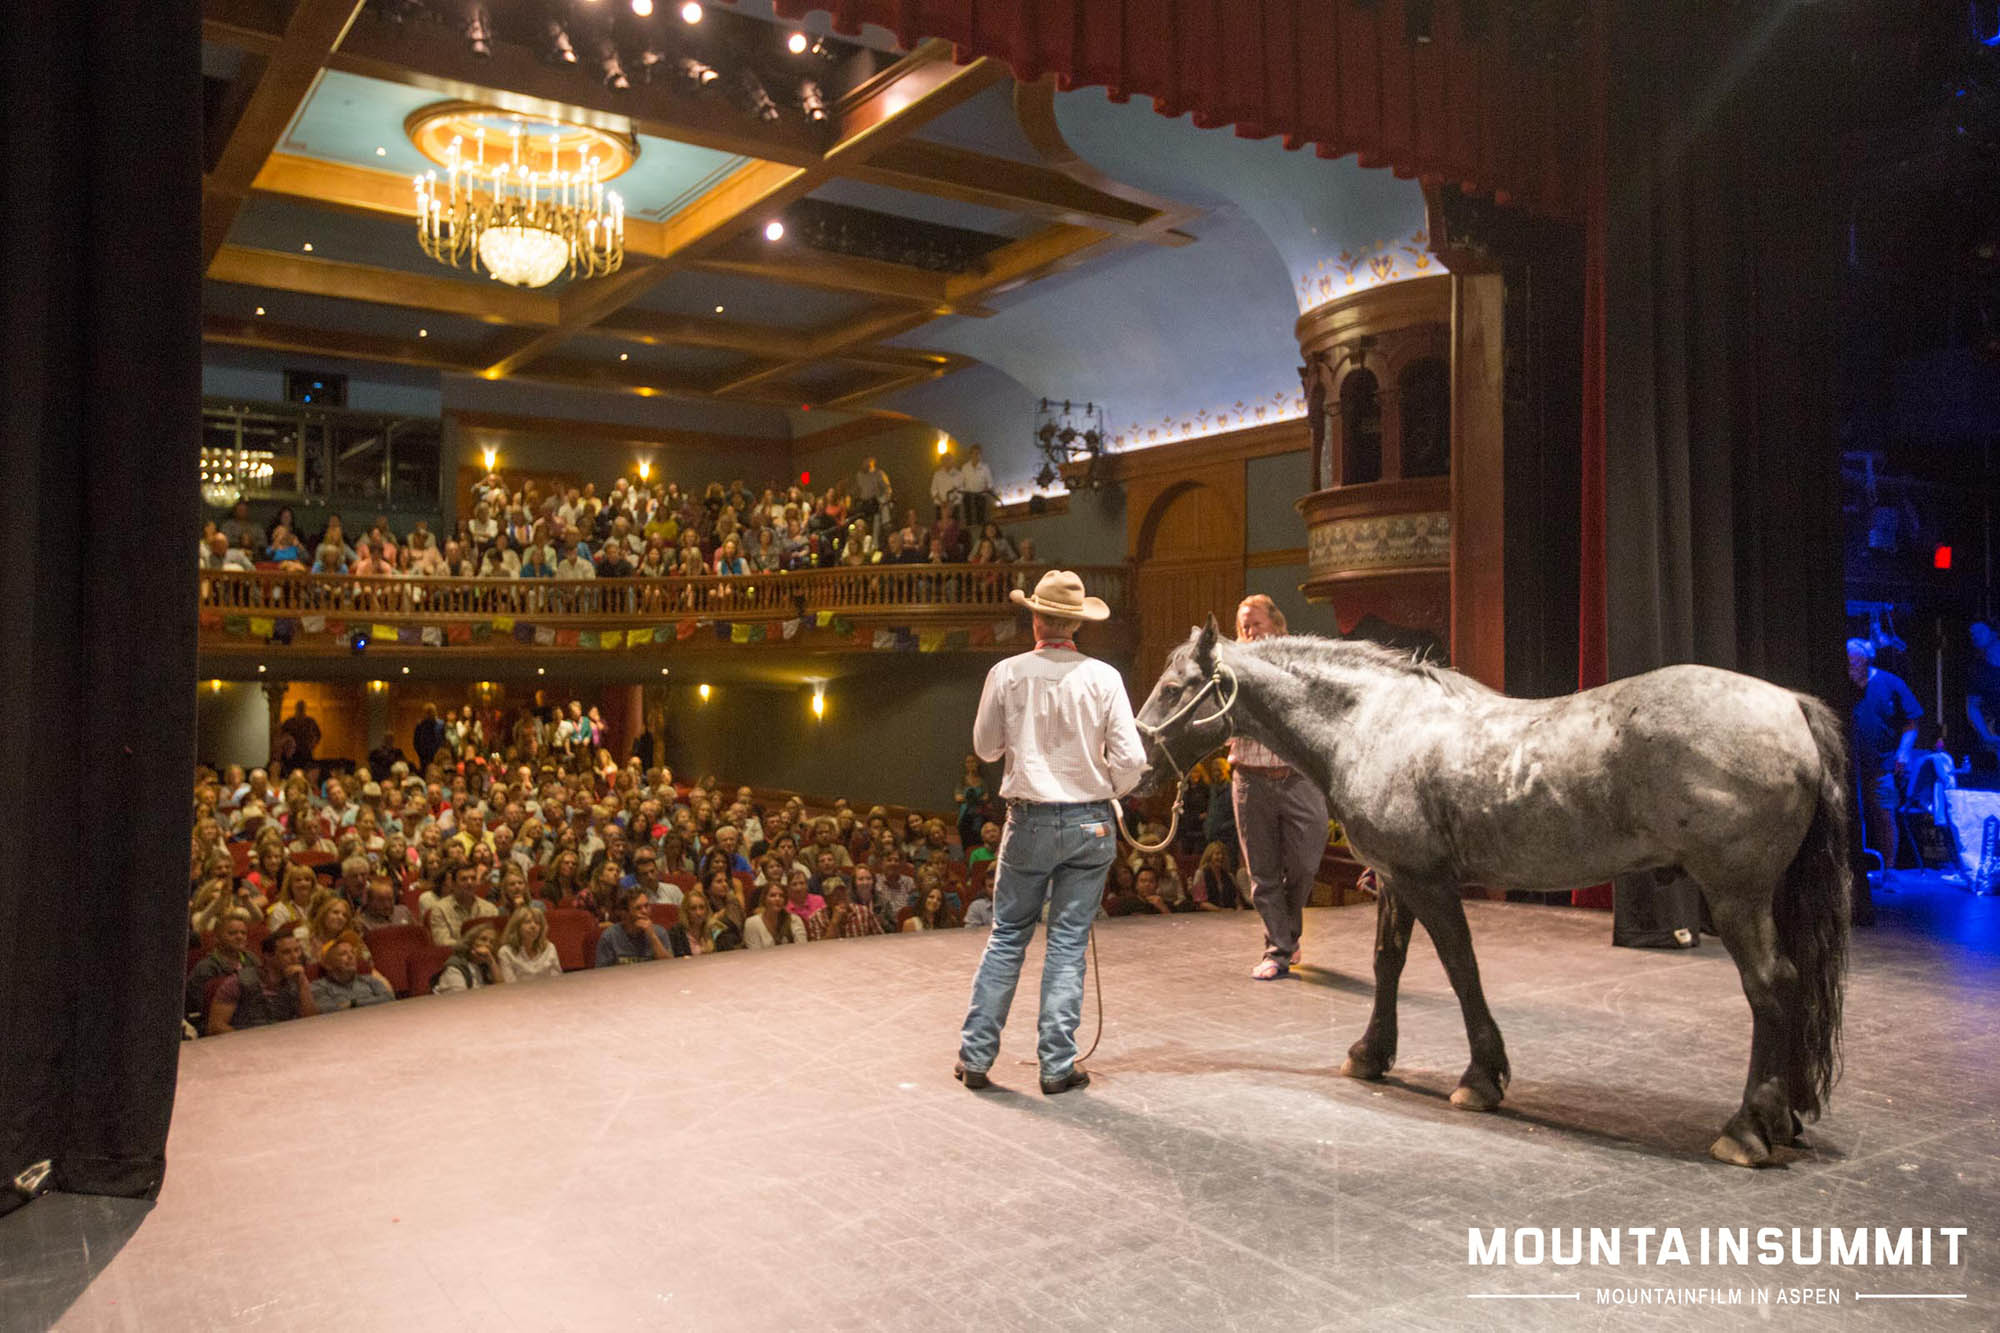 Ben Masters led Tuff on stage after the closing night screening of Unbranded. Jordan Curet photo.